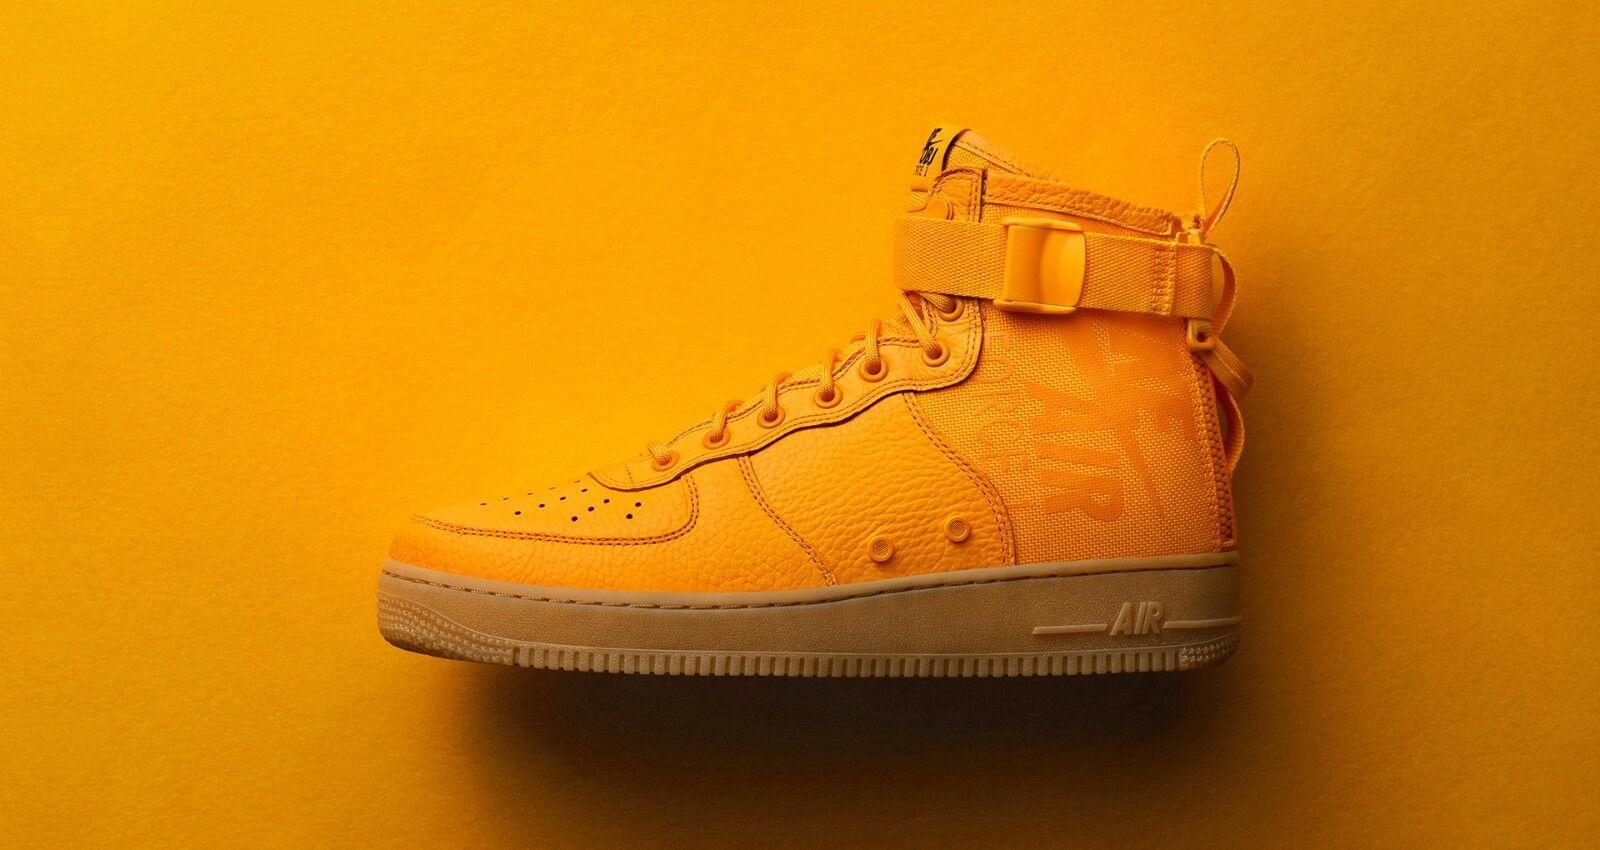 Nike sf air force 1 metà ob sneakeasy odell beckham jr ny giants arancione Uomo